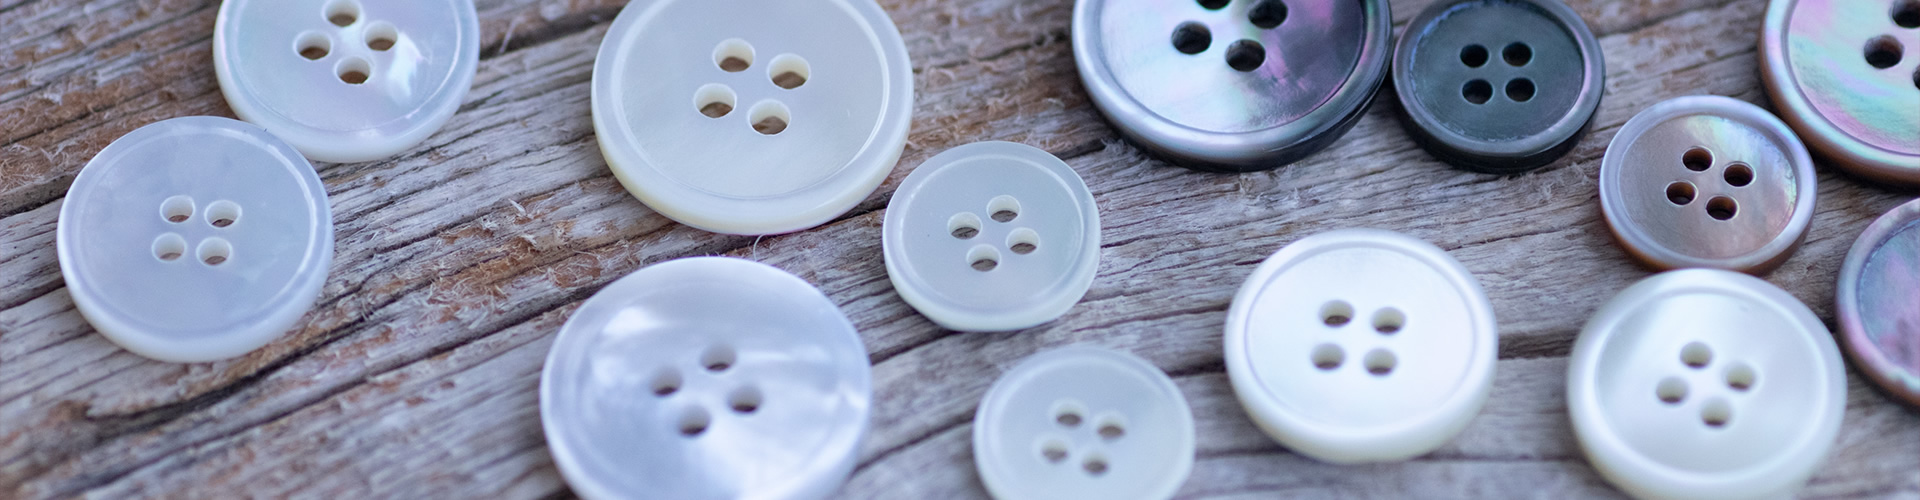 size 25mm 3 each of 3 designs 9 large wooden buttons